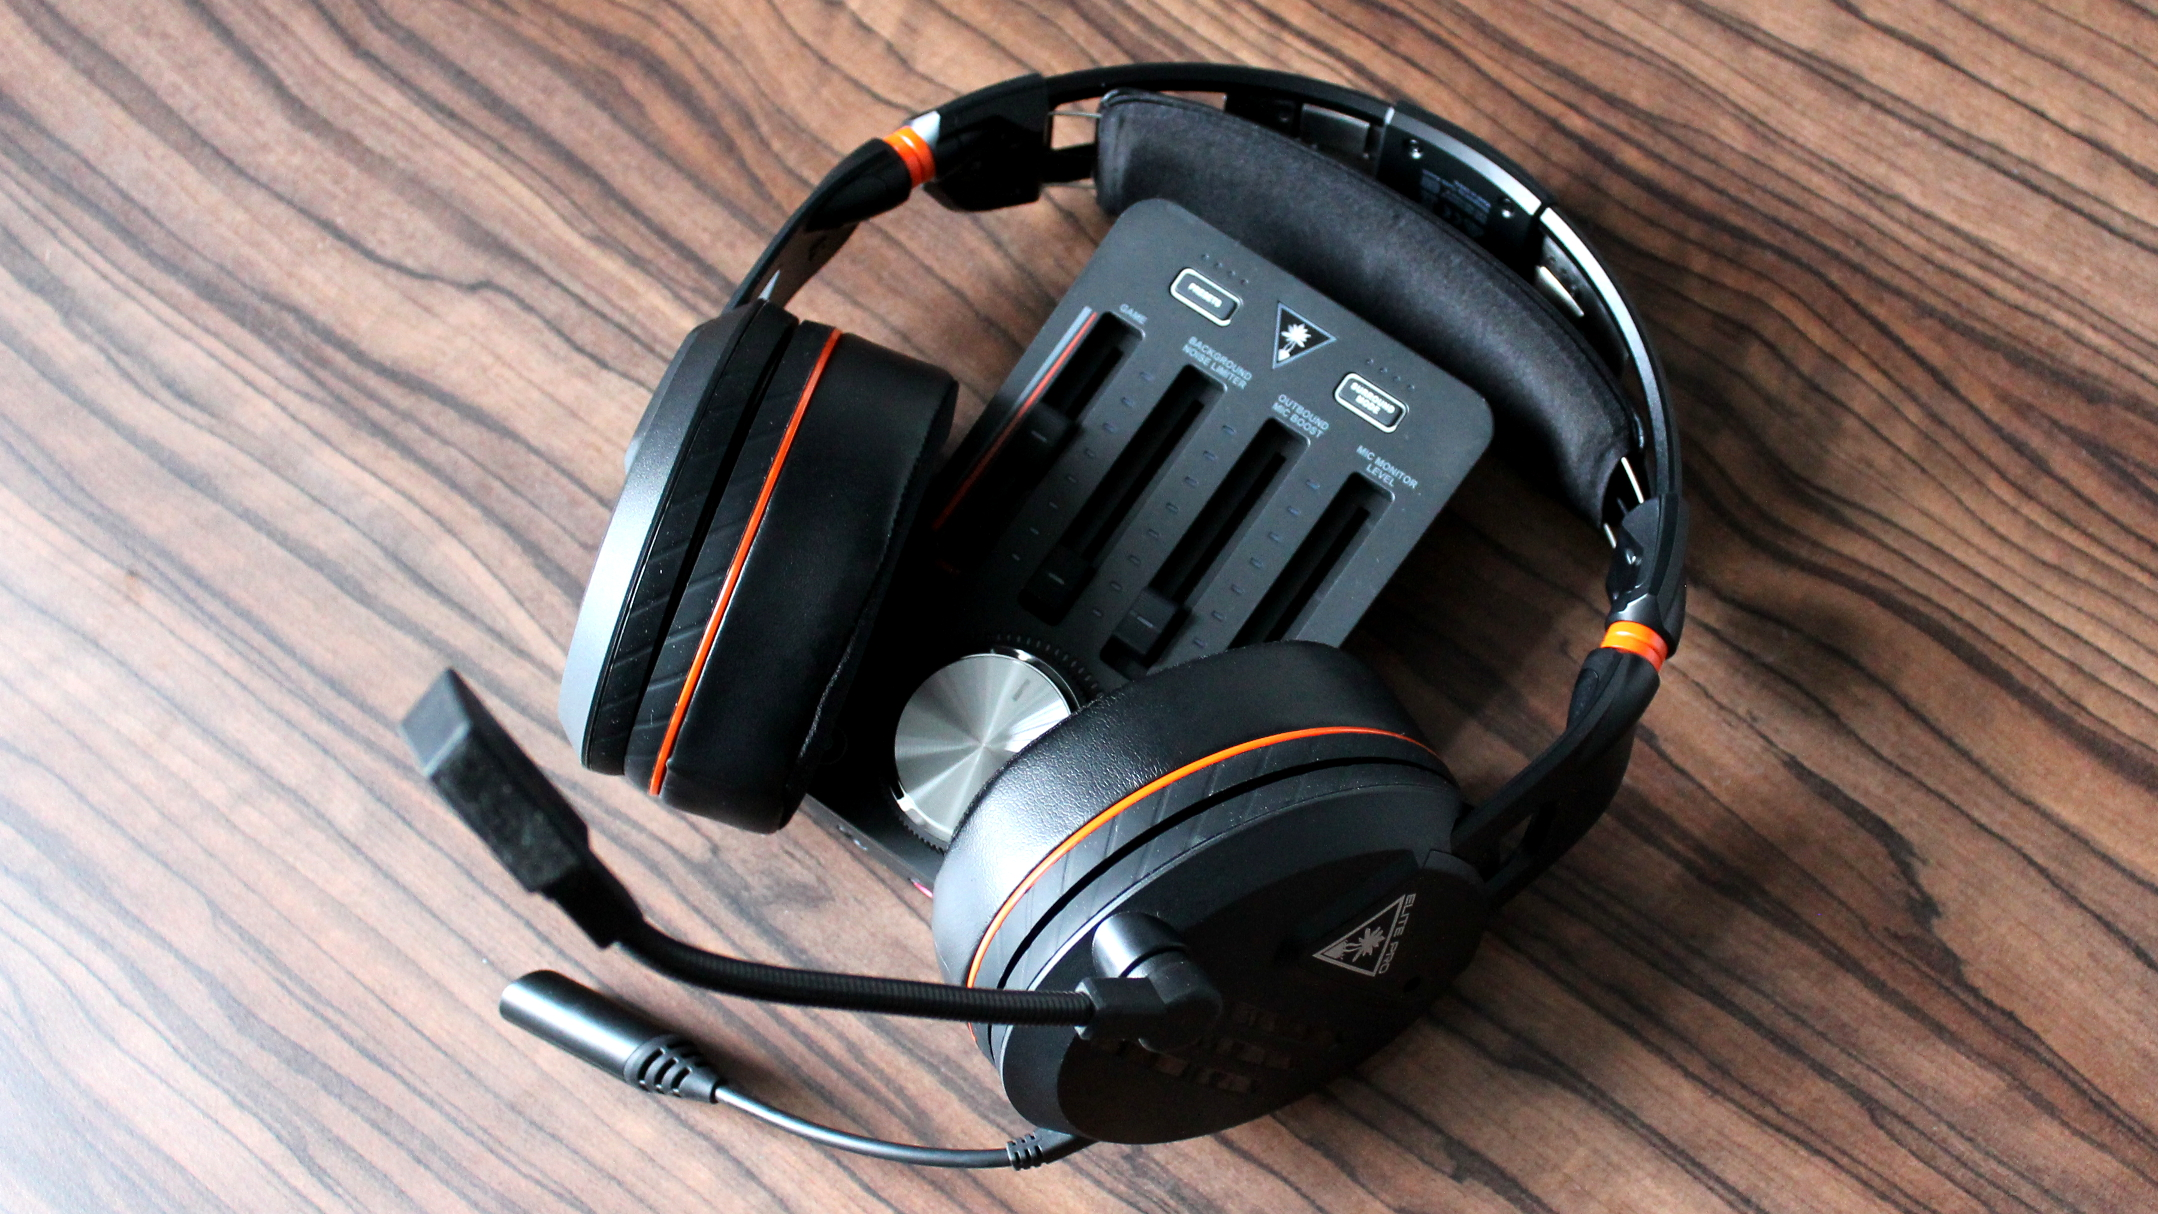 15 best PC gaming headsets in India | scenz kuch esa haen